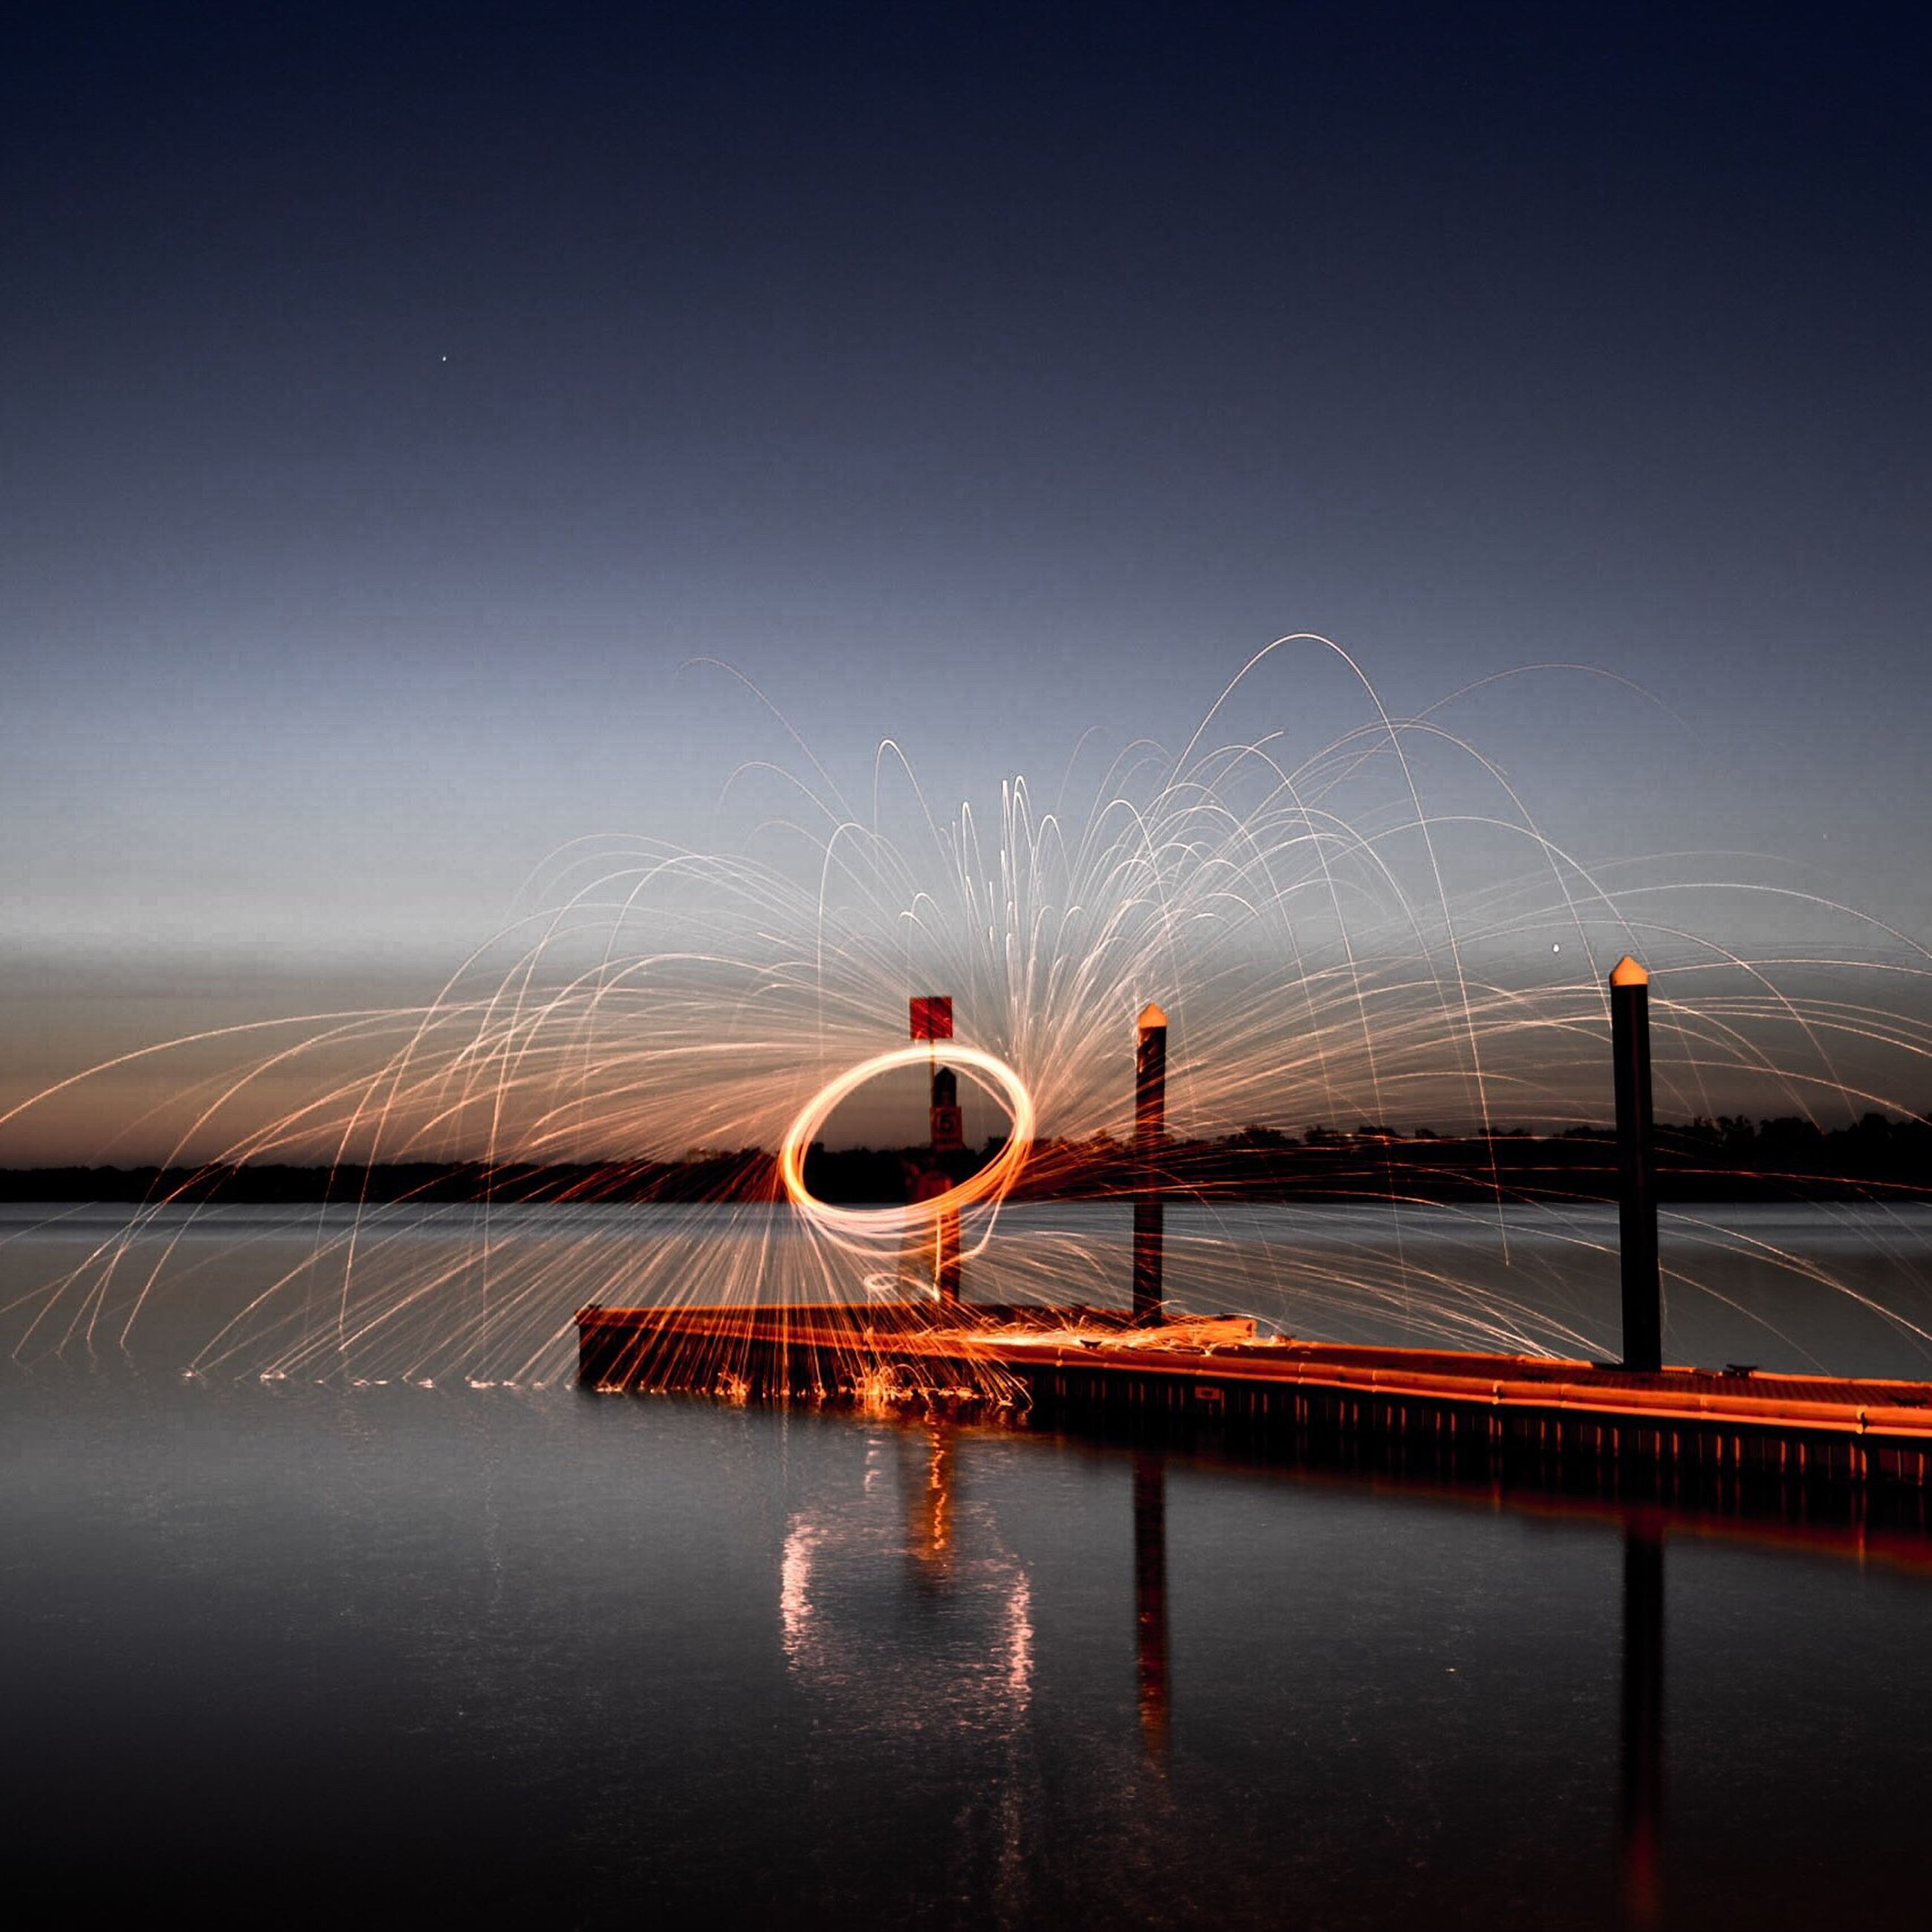 transportation, water, illuminated, connection, night, bridge - man made structure, waterfront, clear sky, built structure, river, sky, copy space, engineering, bridge, architecture, suspension bridge, sea, mode of transport, reflection, outdoors